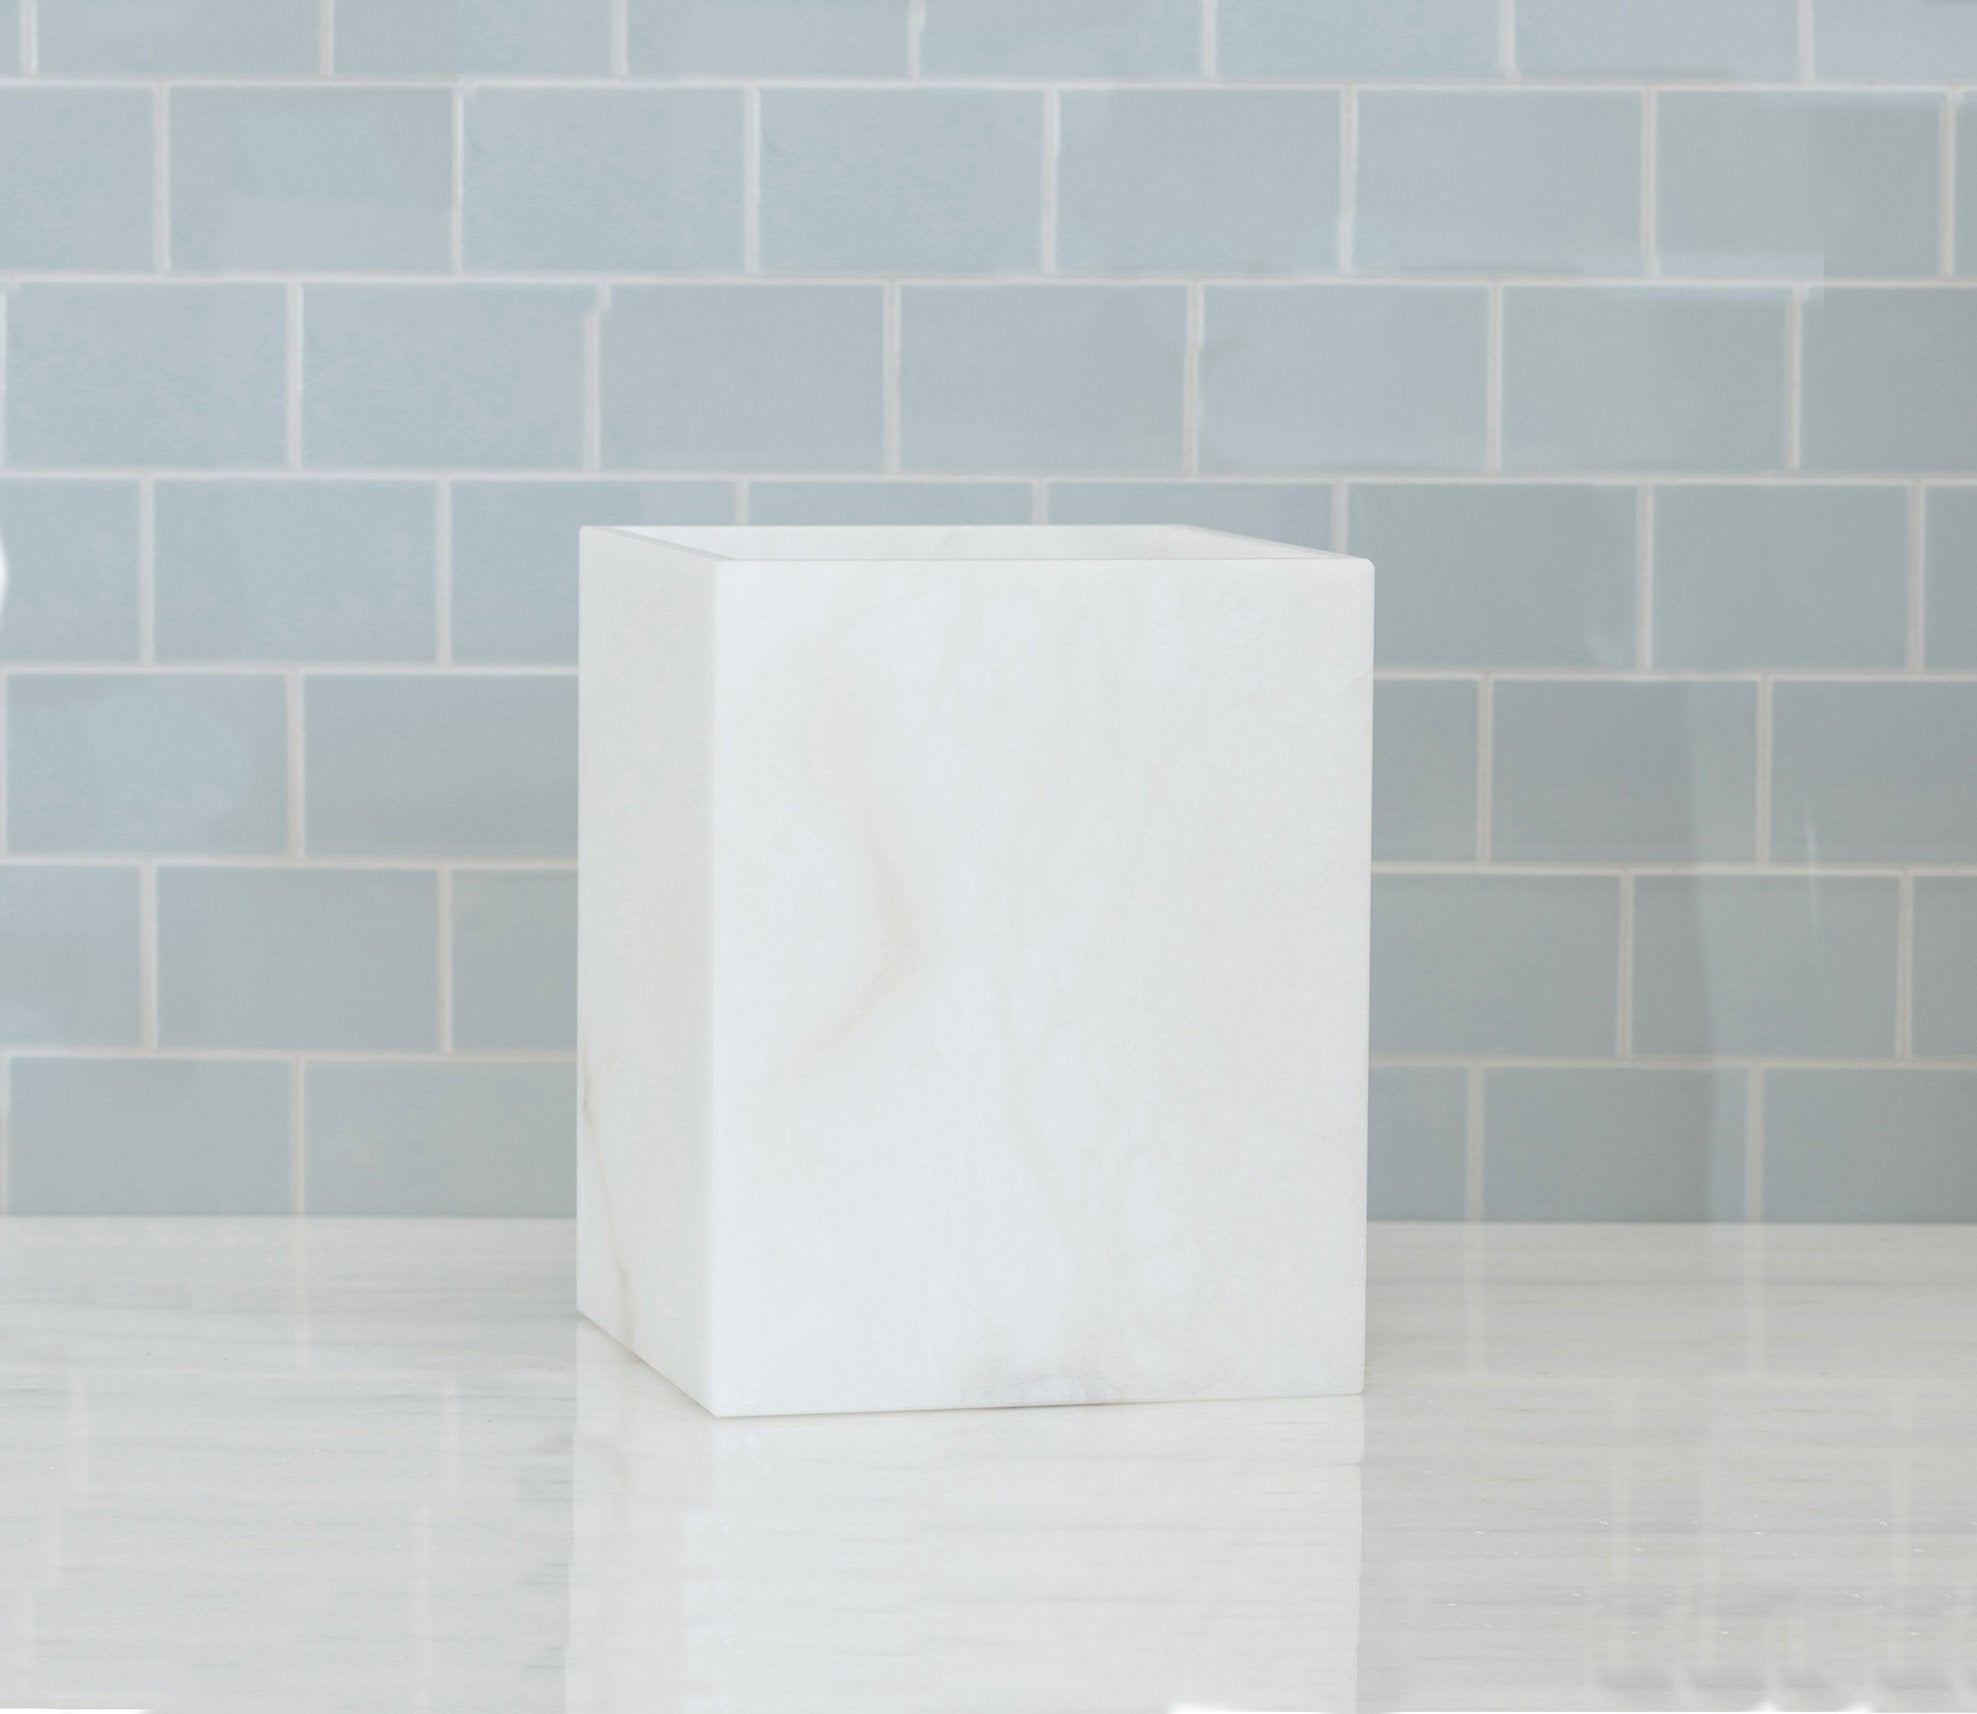 Alabaster Waste Bin Product Image 1